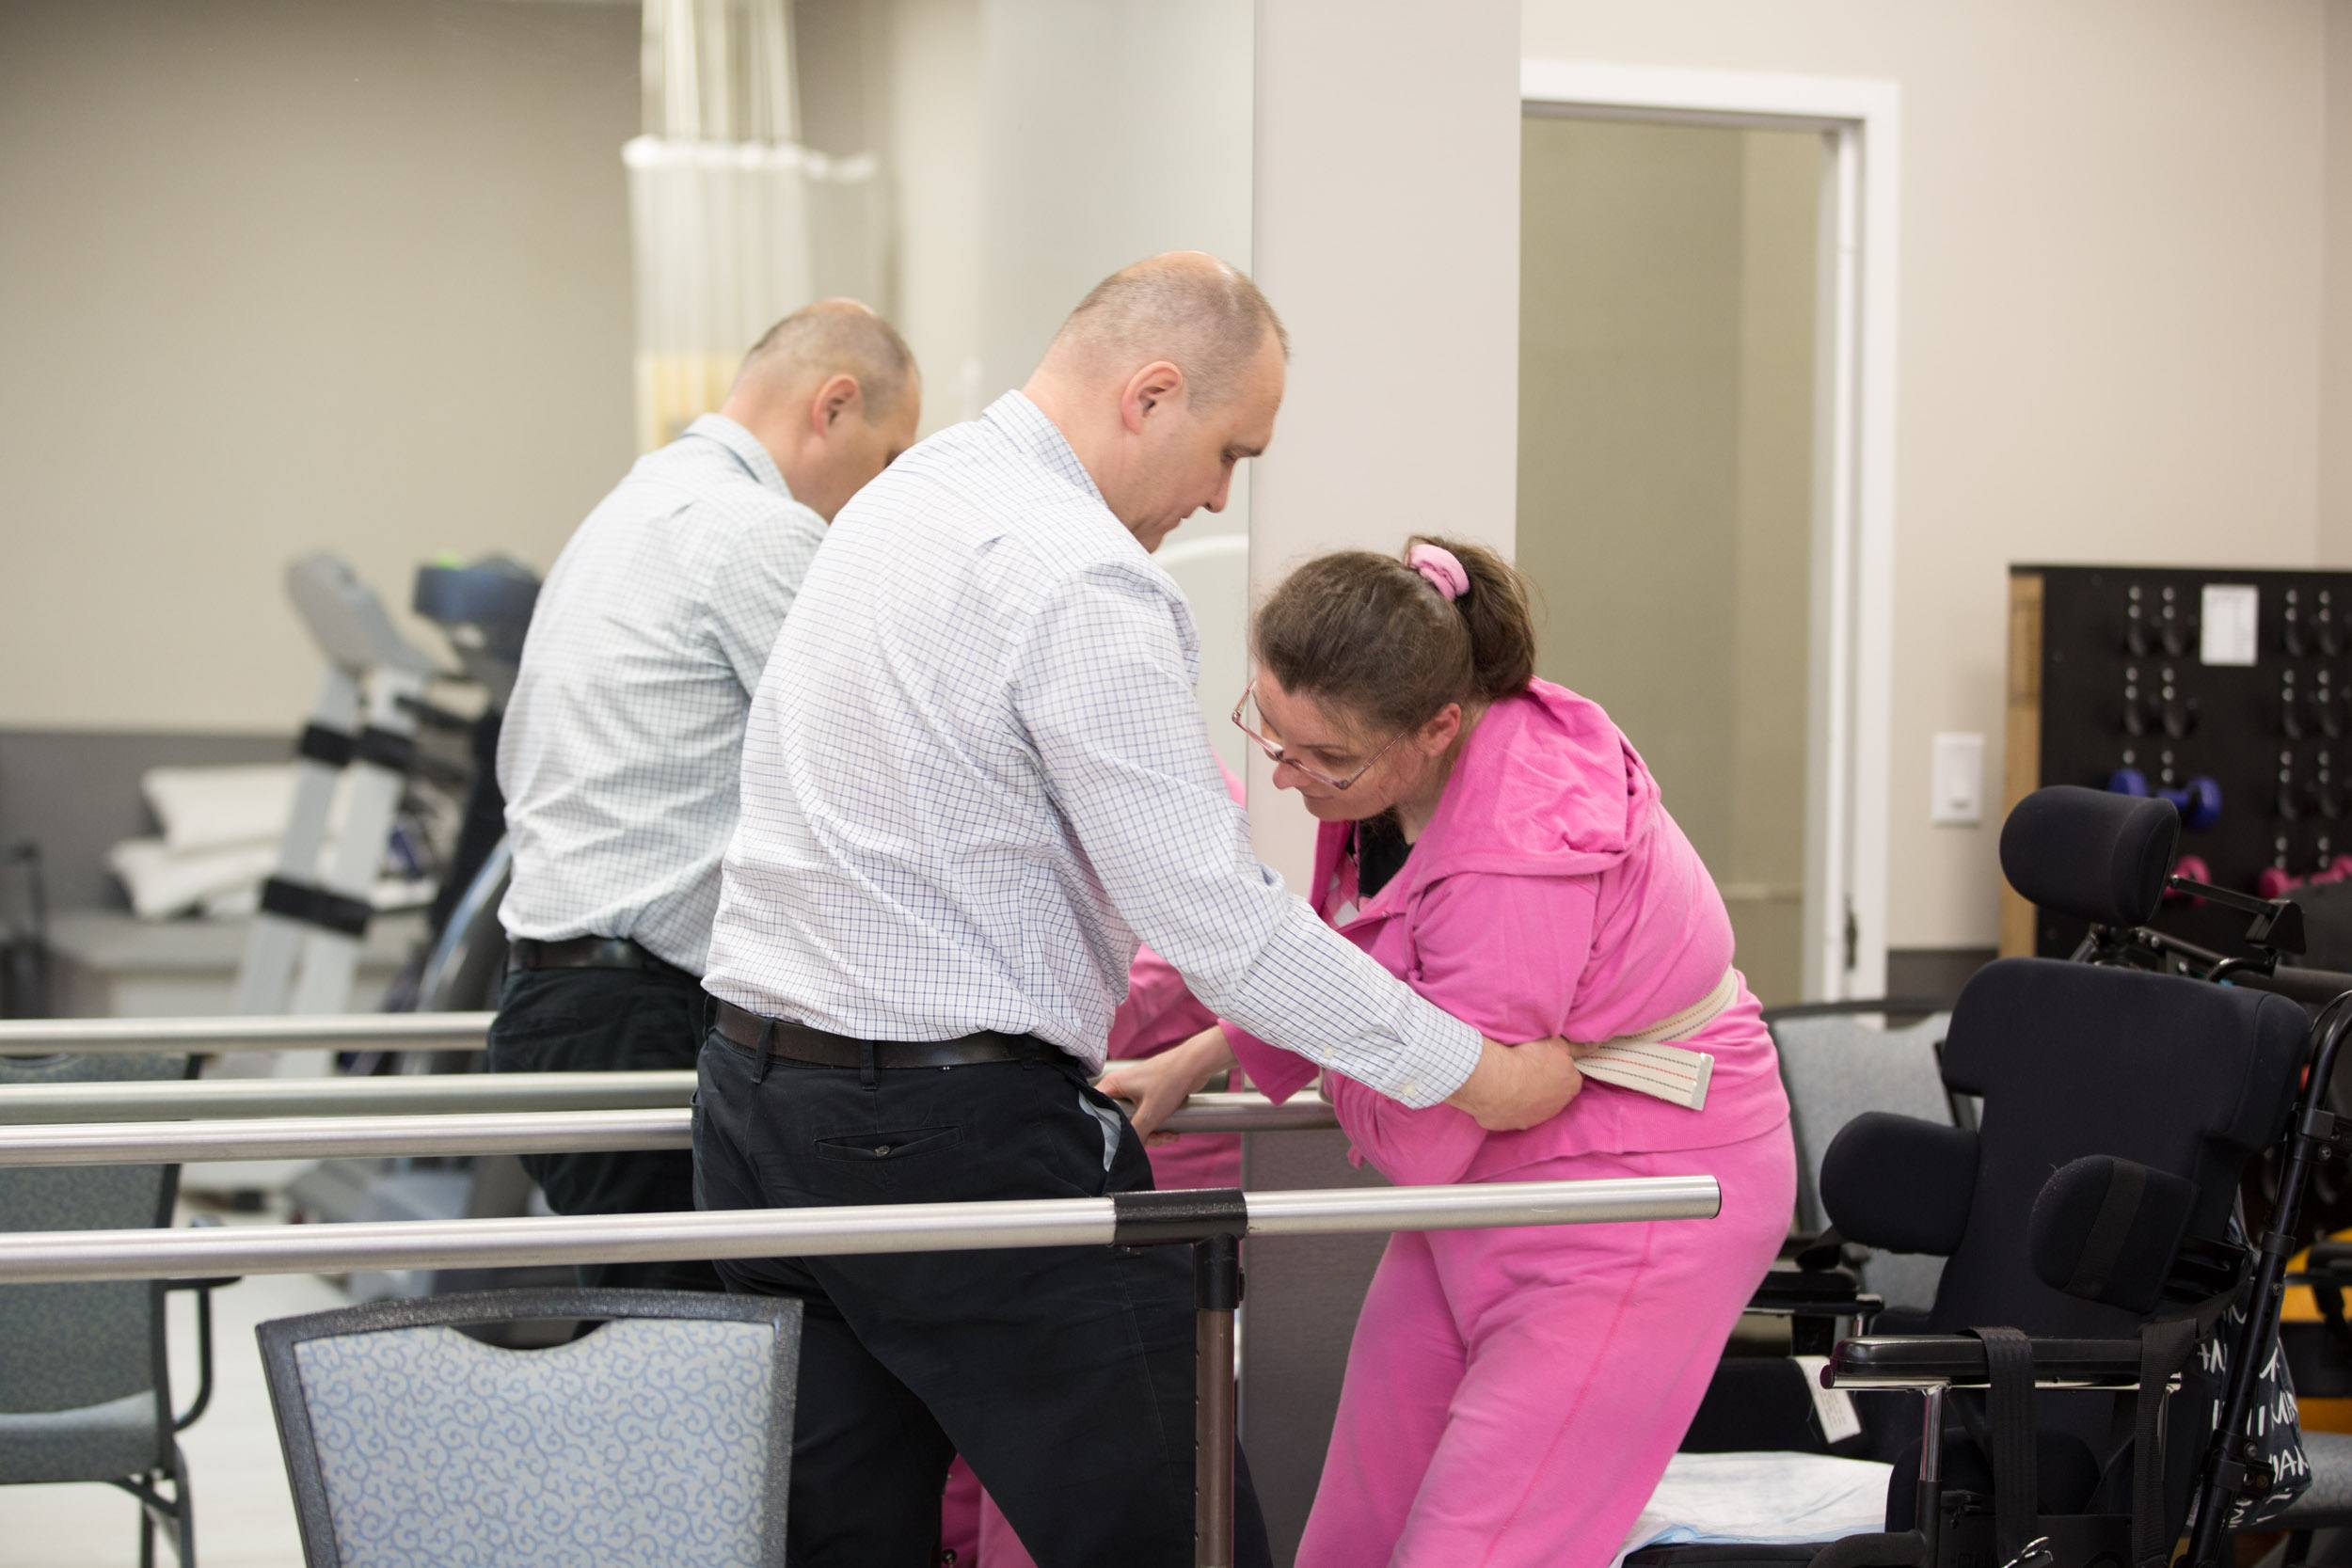 Traumatic Brain Injury Survivors Can Physical Therapy Help Them Cope